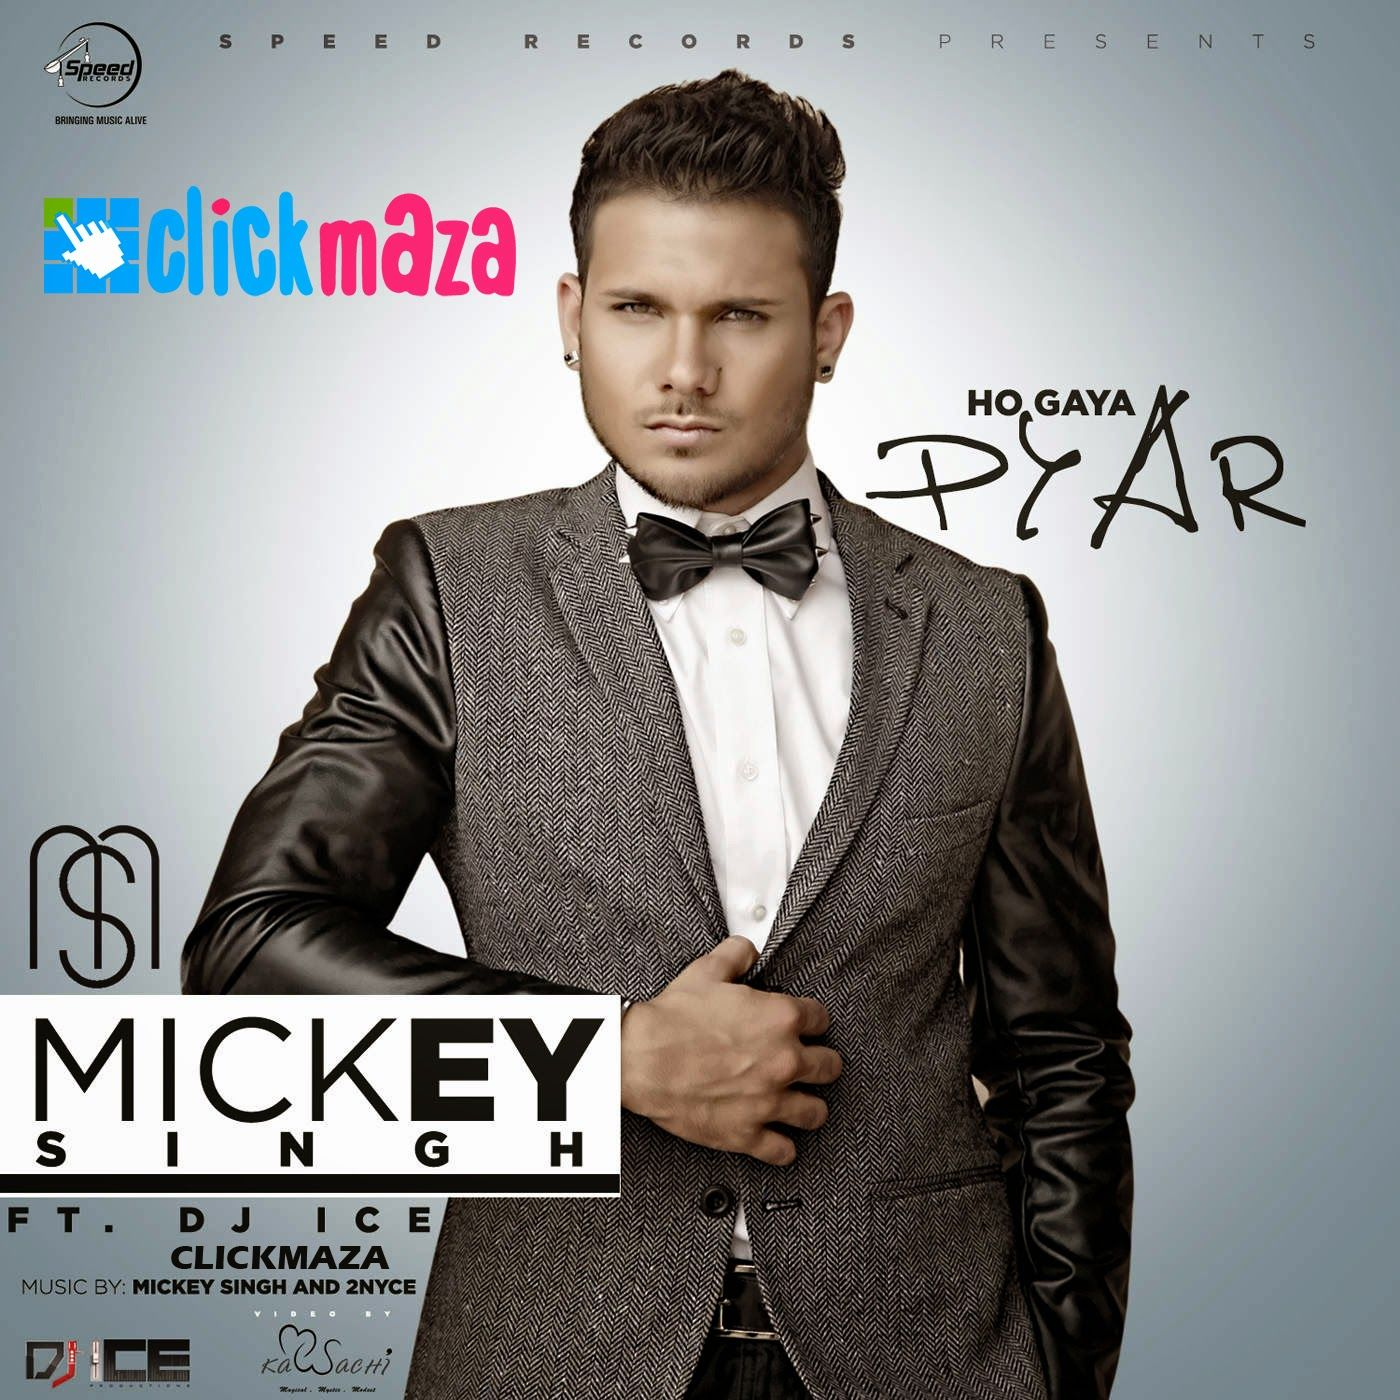 Dj Punjab Singa One Man: Ho Gaya Pyar Mickey Singh Video Songs Download